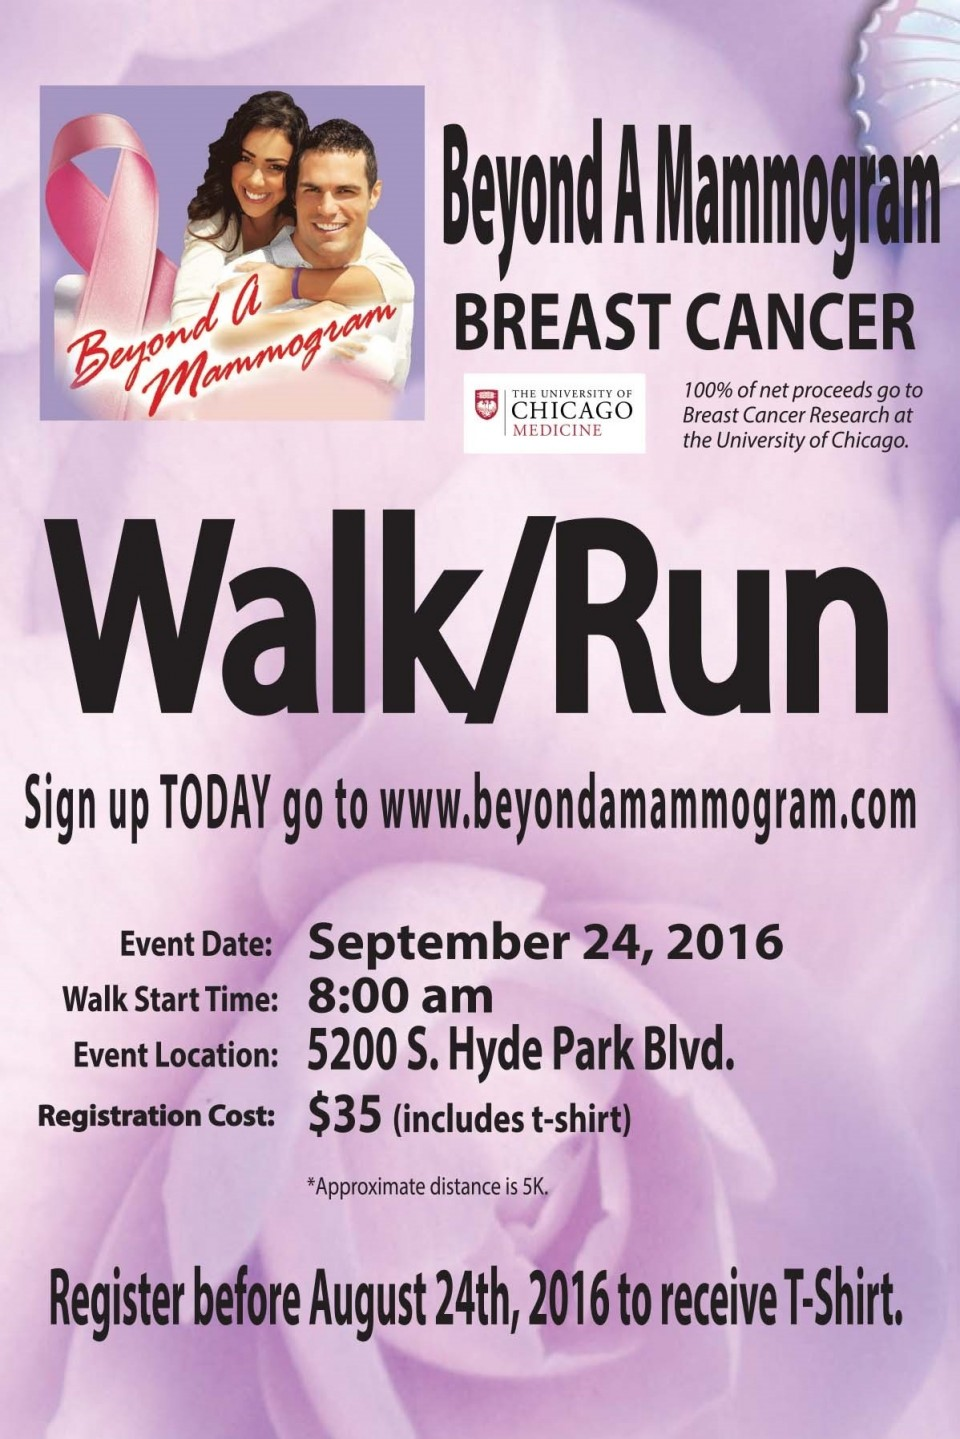 Beyond a Mammogram Breast Cancer Walk/Run